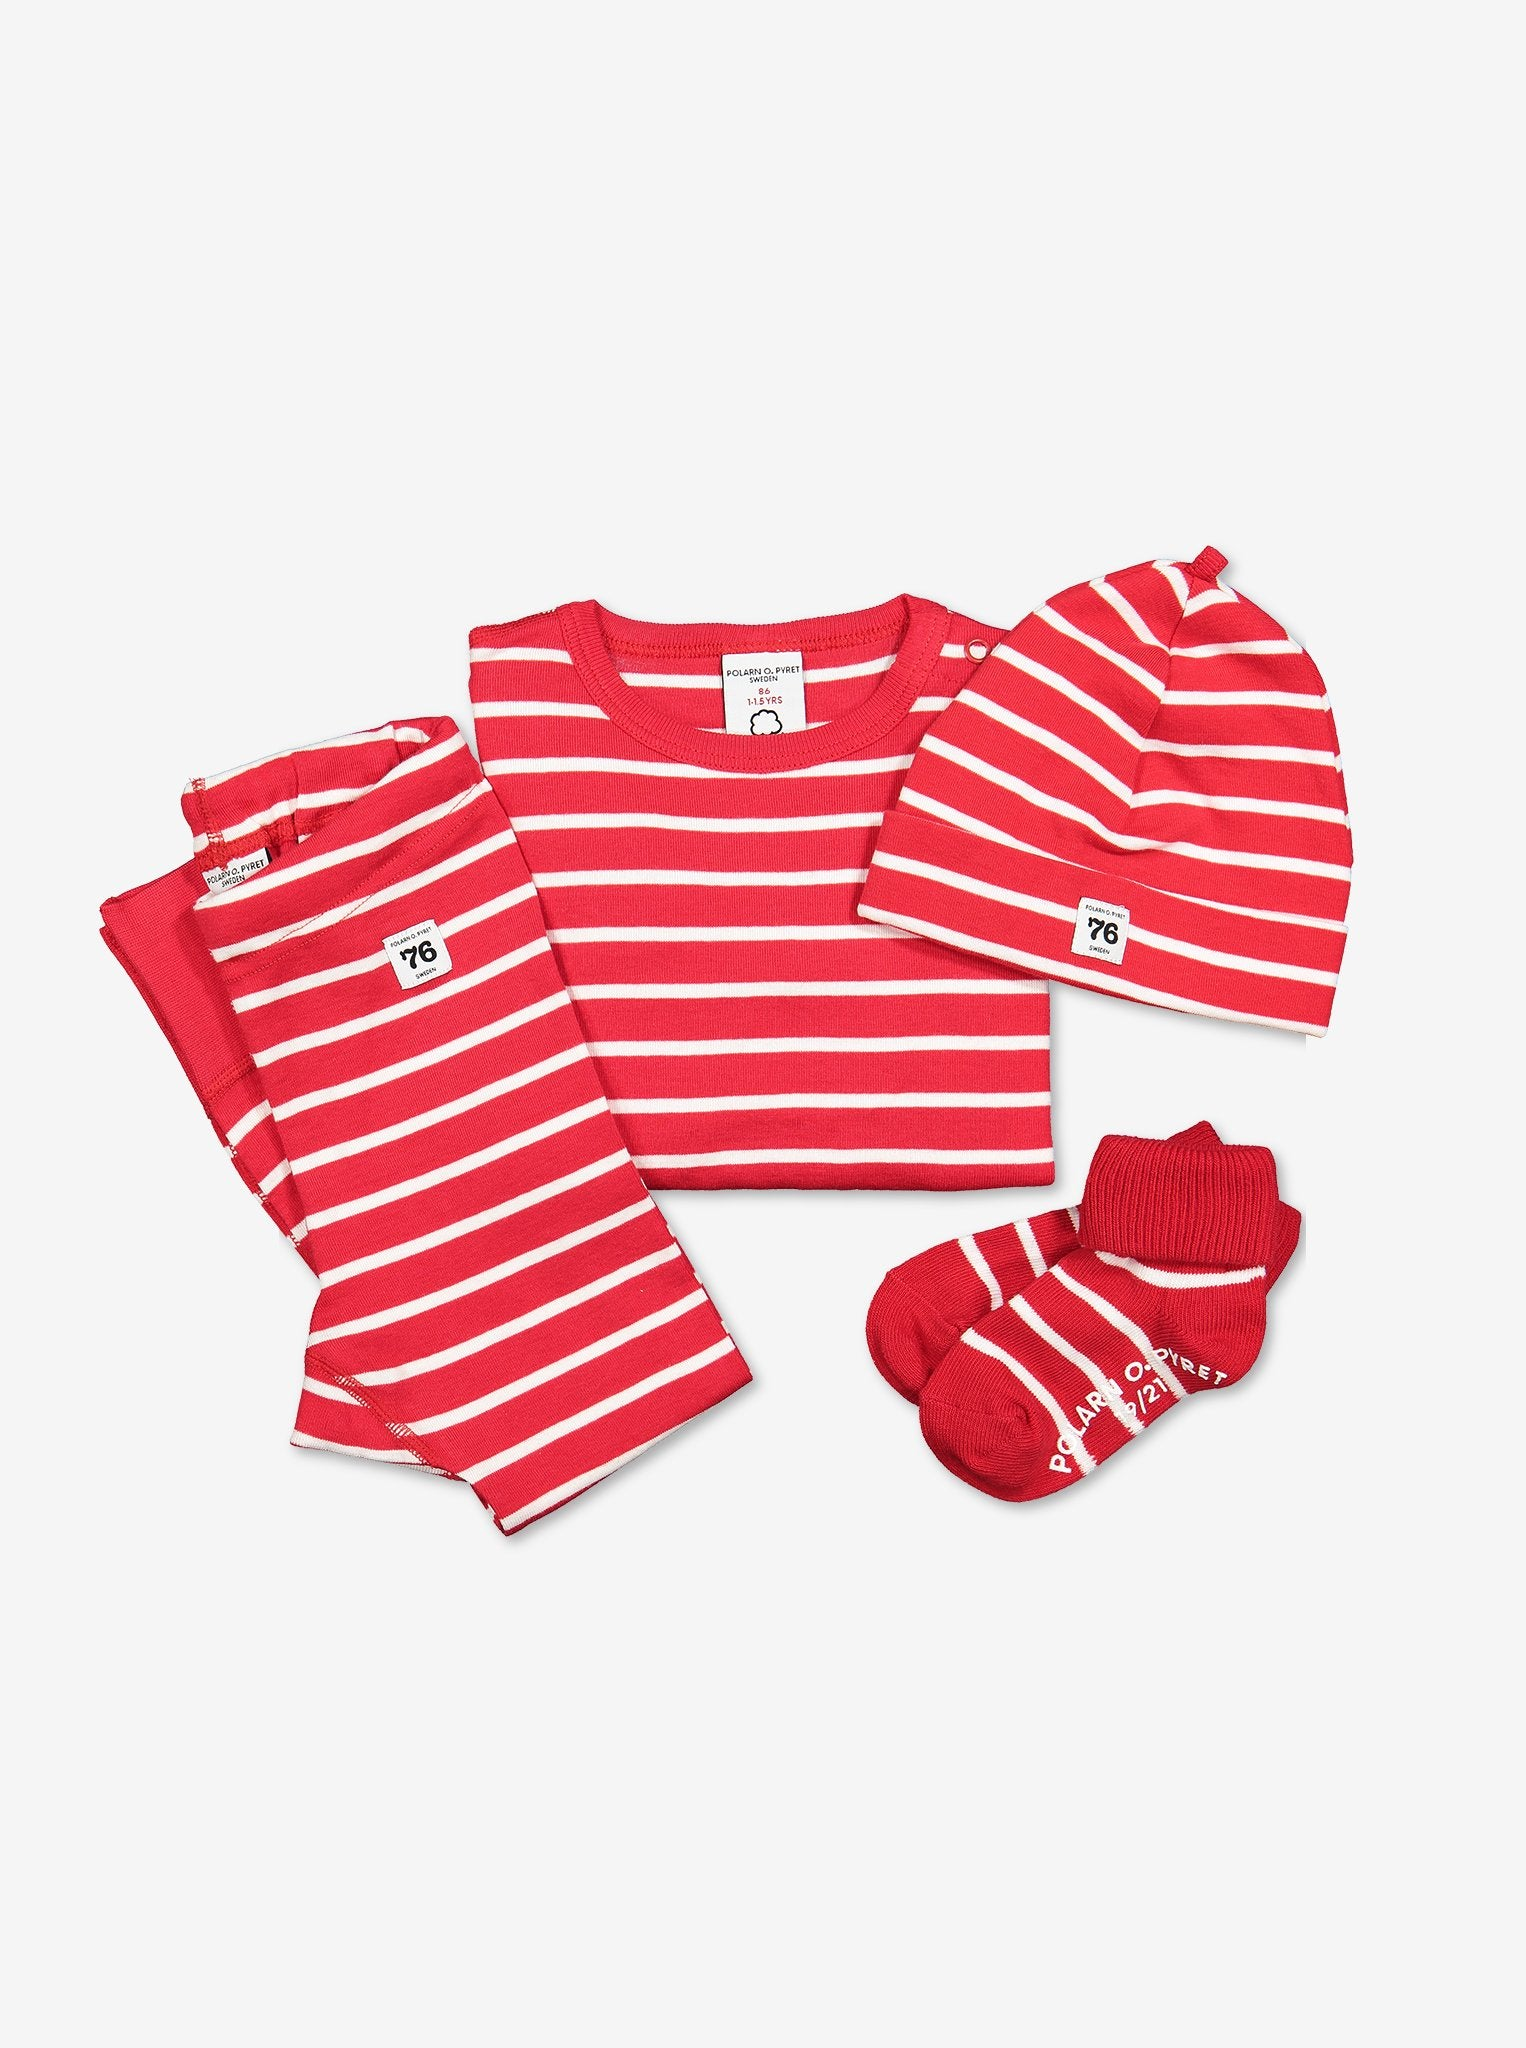 PO.P Stripe Baby Leggings